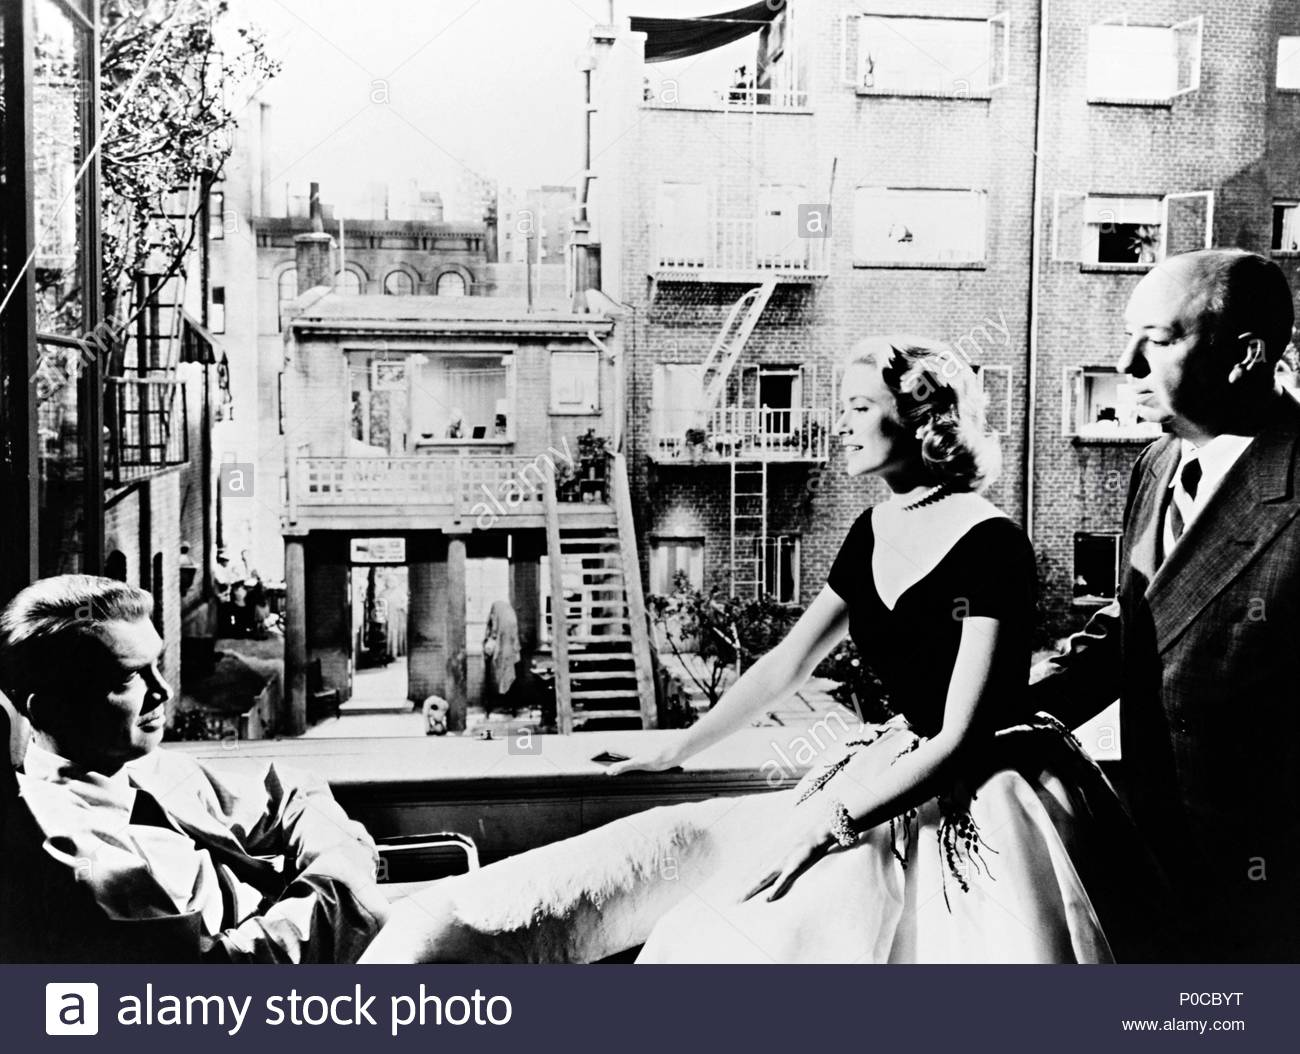 Original Film Title: REAR WINDOW.  English Title: REAR WINDOW.  Film Director: ALFRED HITCHCOCK.  Year: 1954.  Stars: JAMES STEWART; GRACE KELLY; ALFRED HITCHCOCK. Credit: PARAMOUNT PICTURES / Album - Stock Image